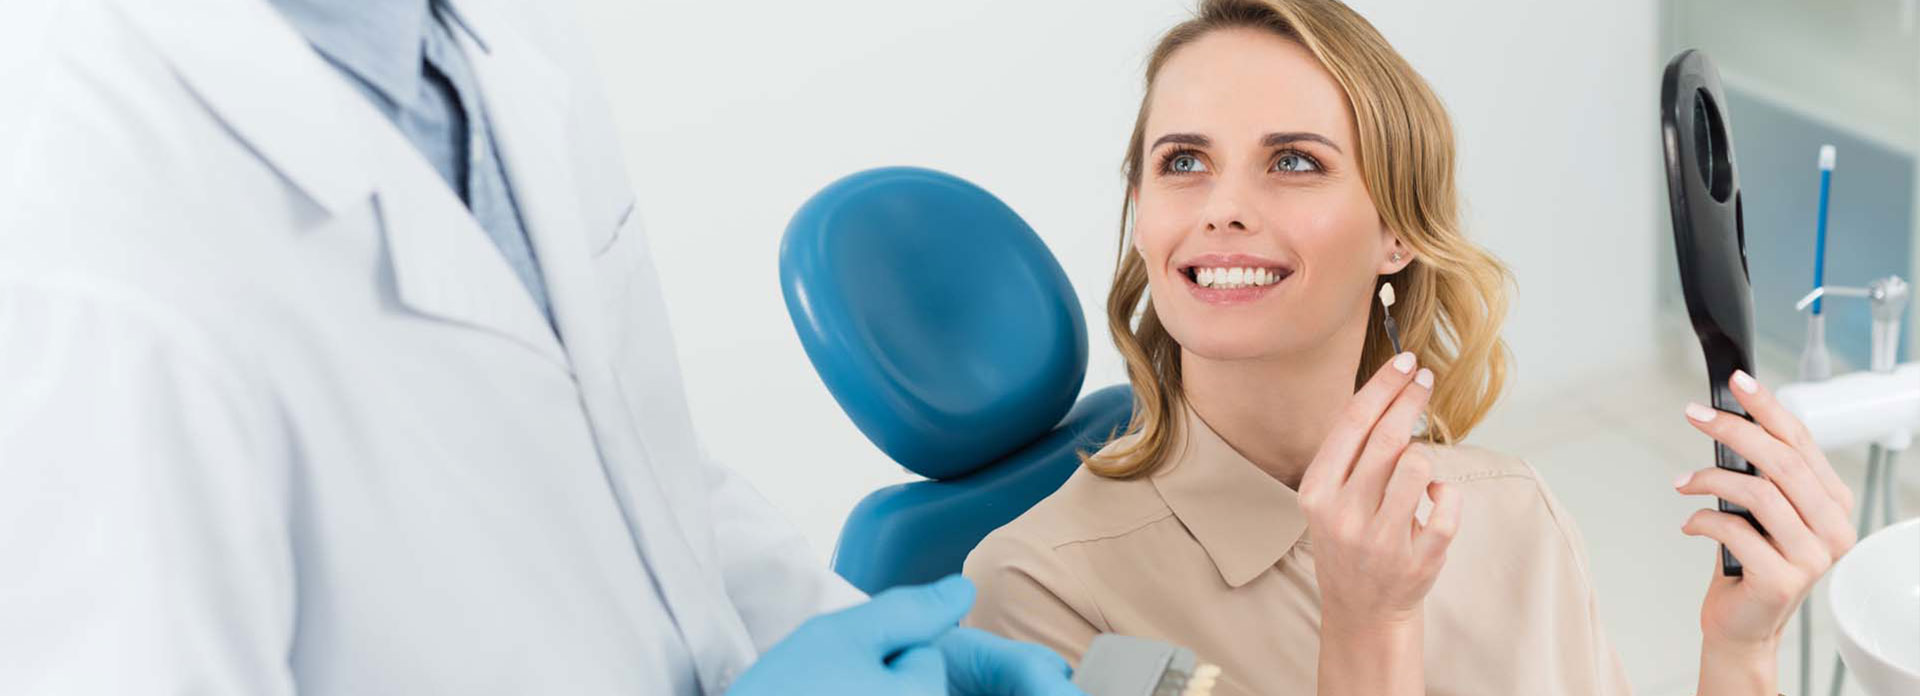 A patient smiling at the dentist after checking her teeth in the mirror